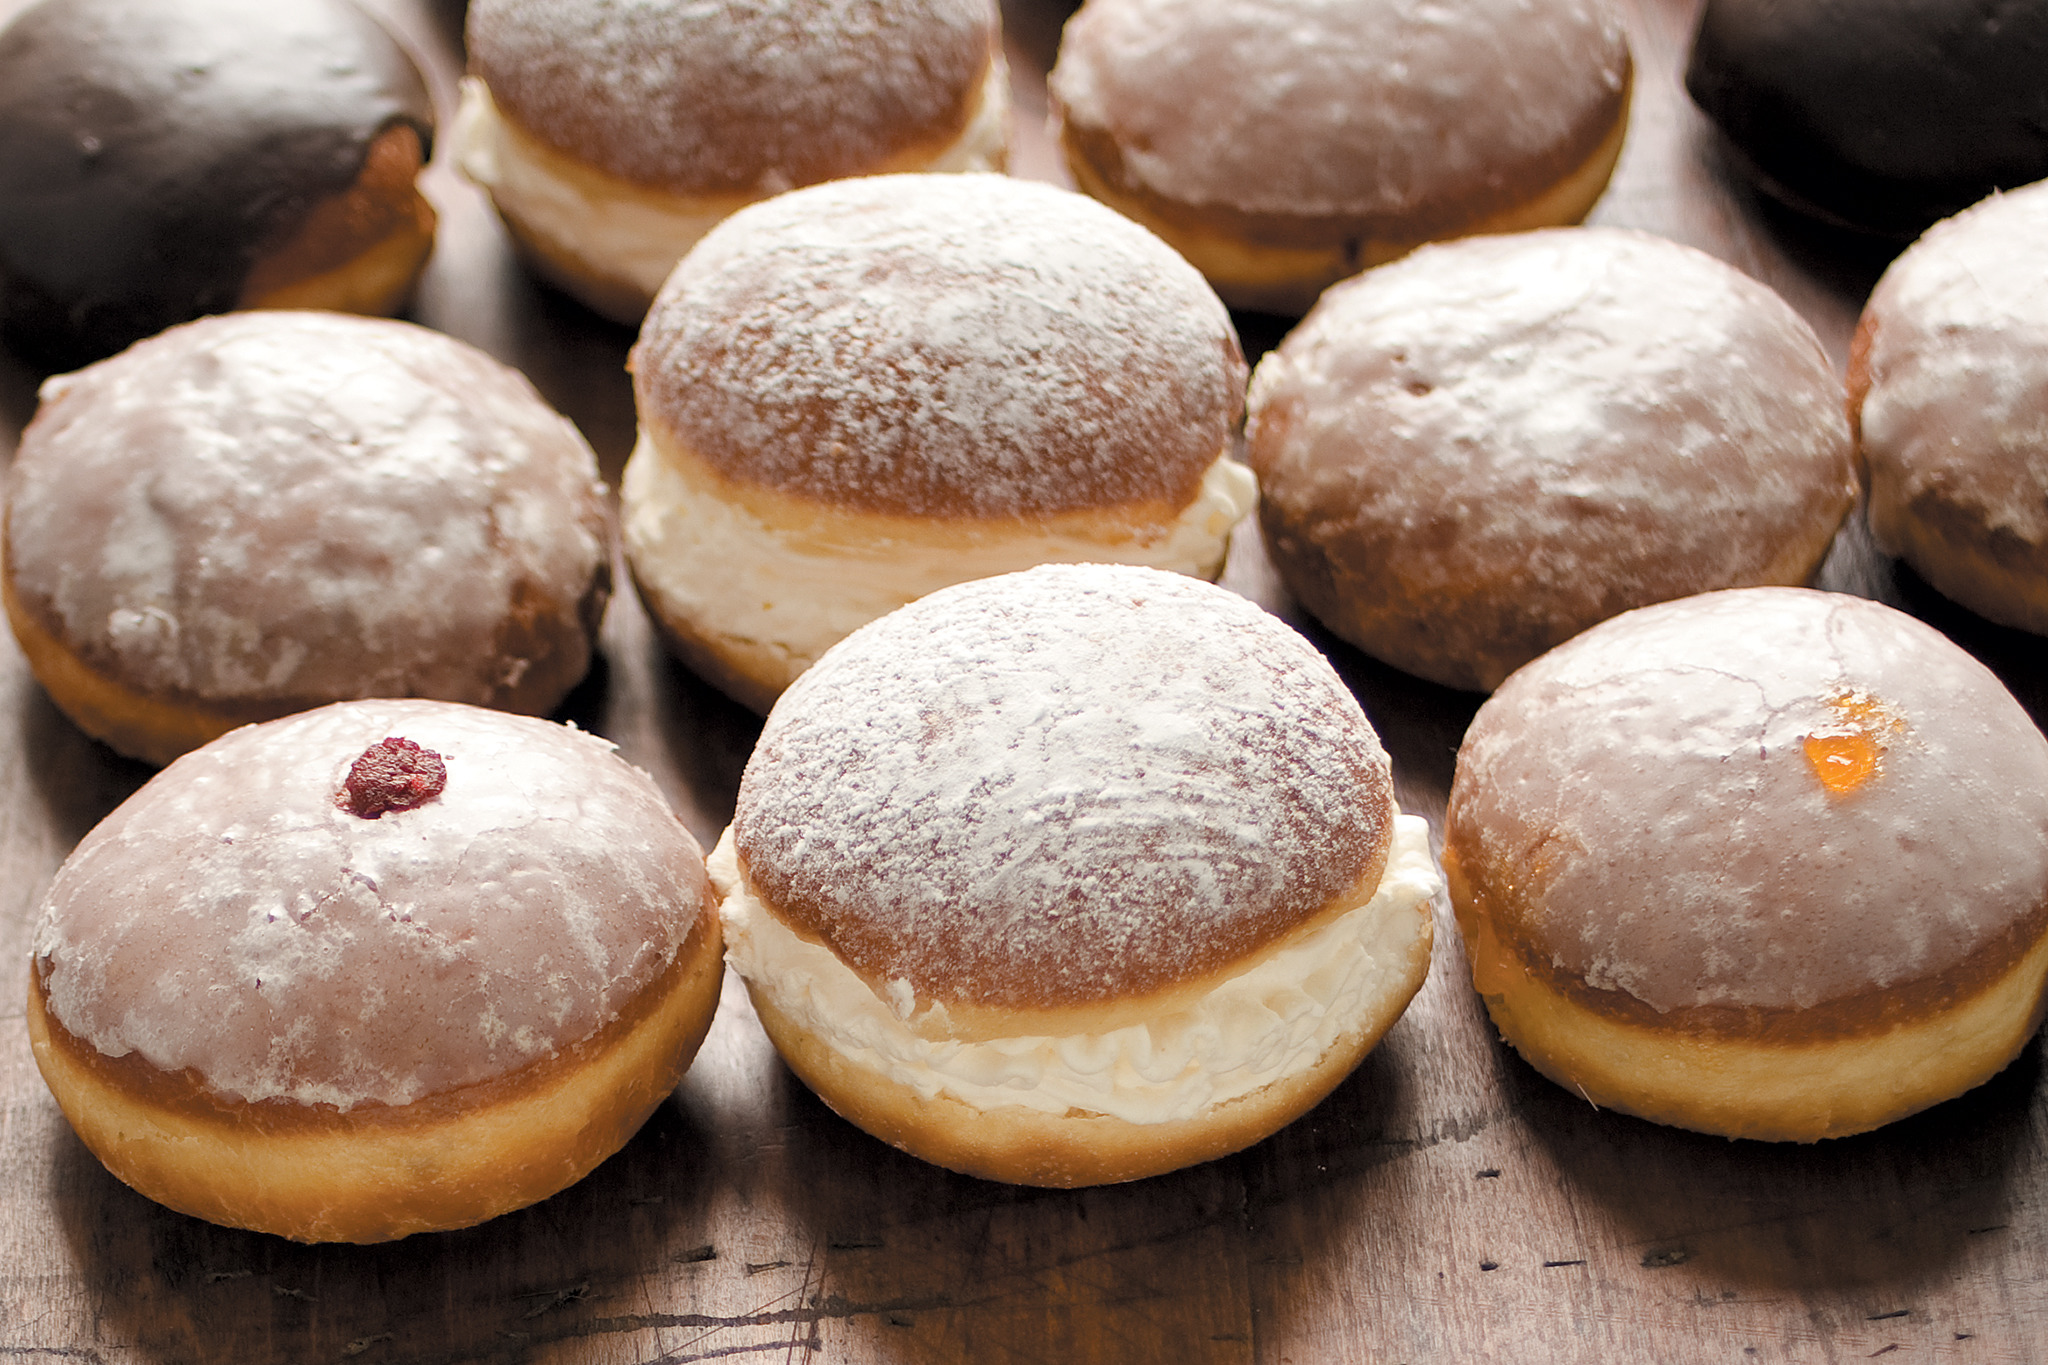 Where do find paczki in Chicago